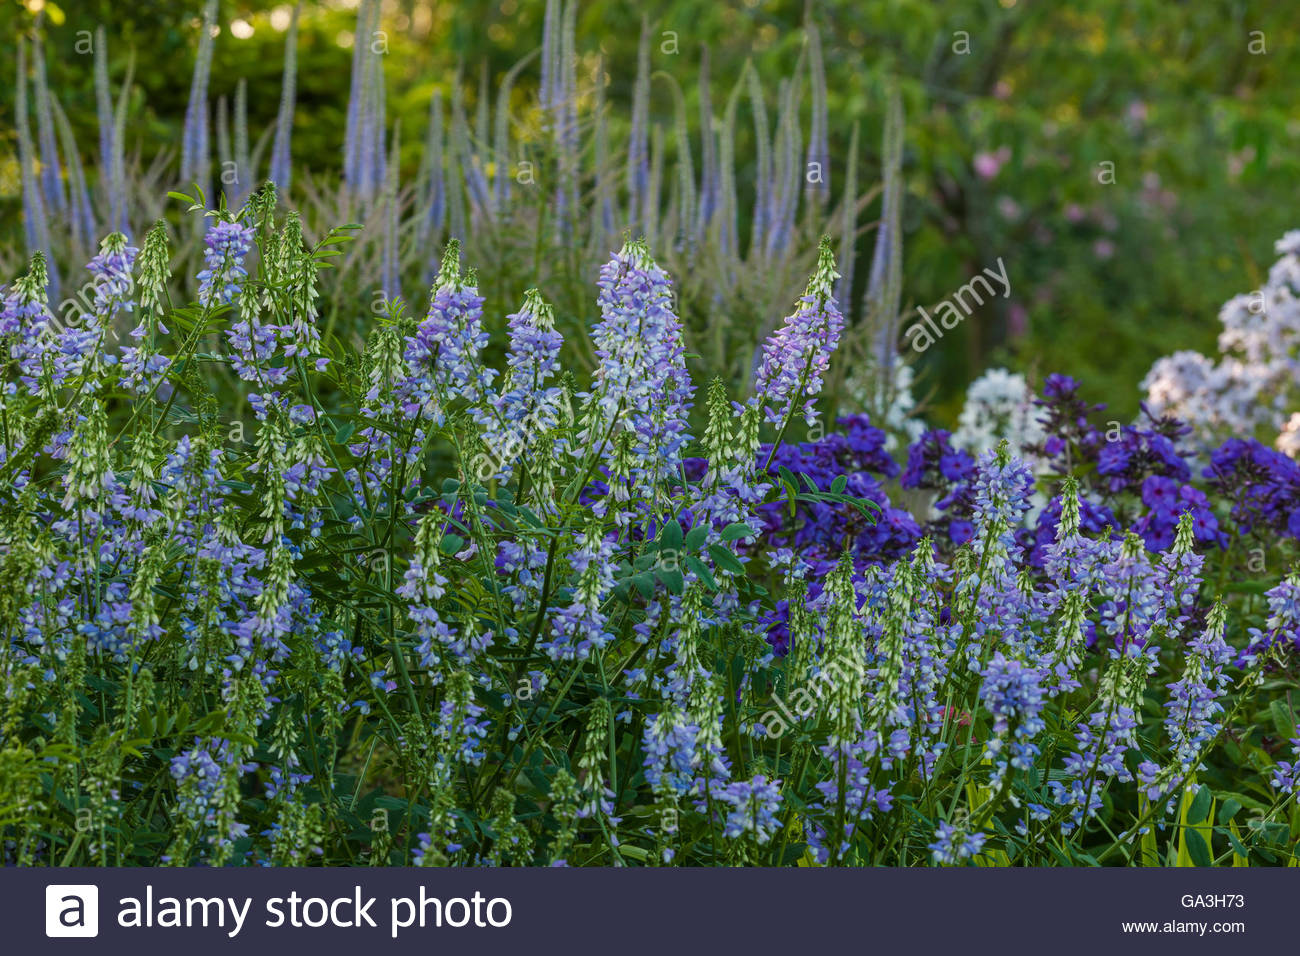 Galega 'His Majesty' goat's rue - Stock Image